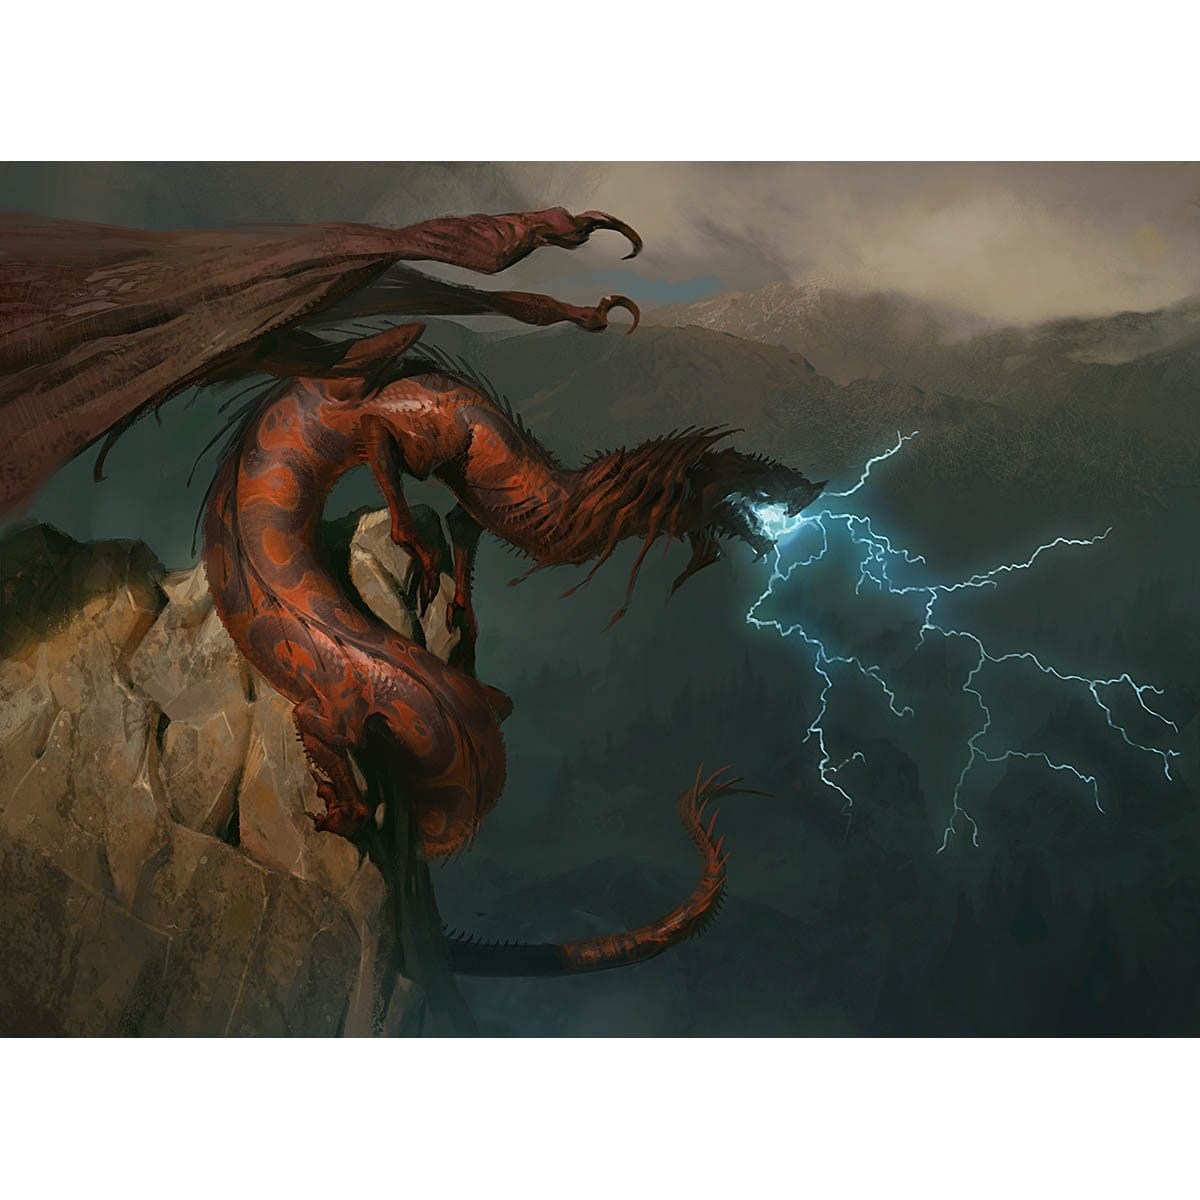 Stormbreath Dragon Print - Print - Original Magic Art - Accessories for Magic the Gathering and other card games